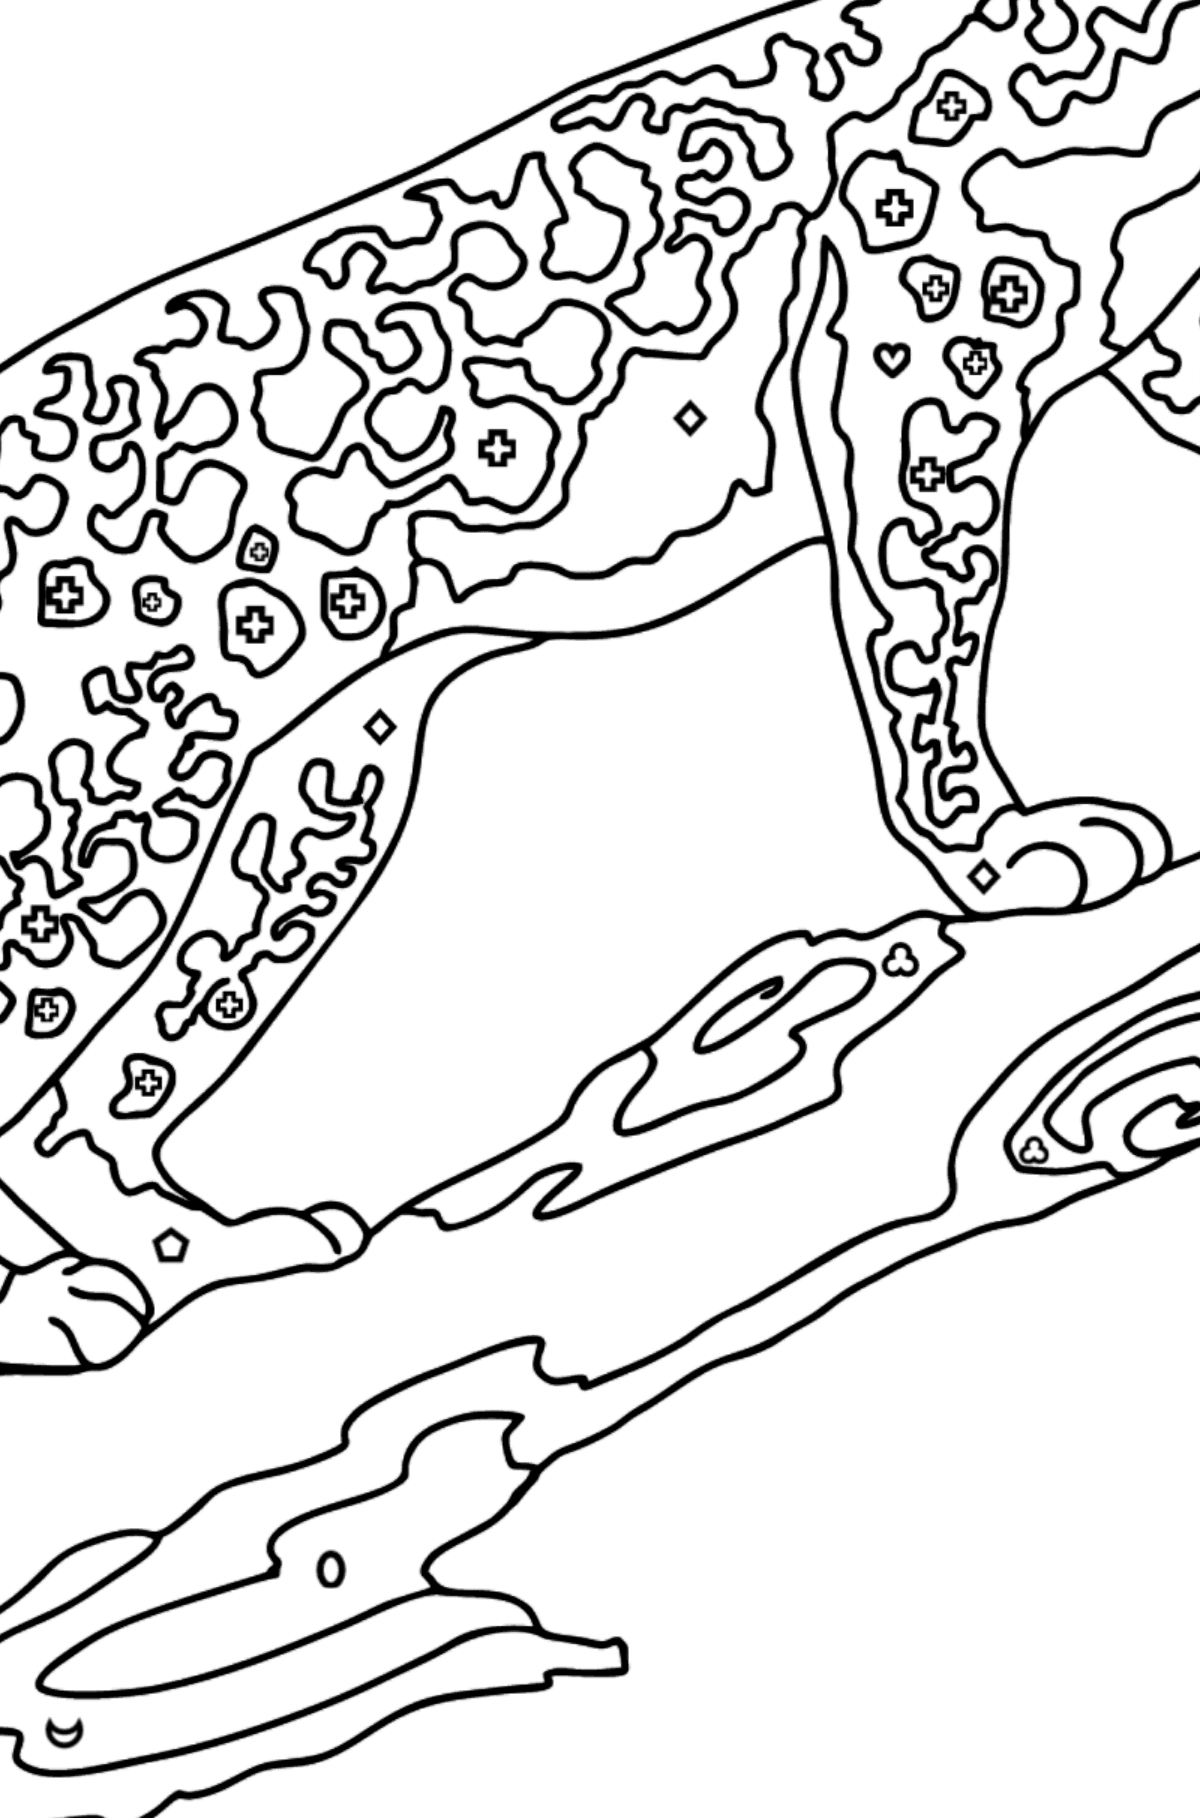 Coloring Page - A Leopard is on a Hunt - Coloring by Geometric Shapes for Kids